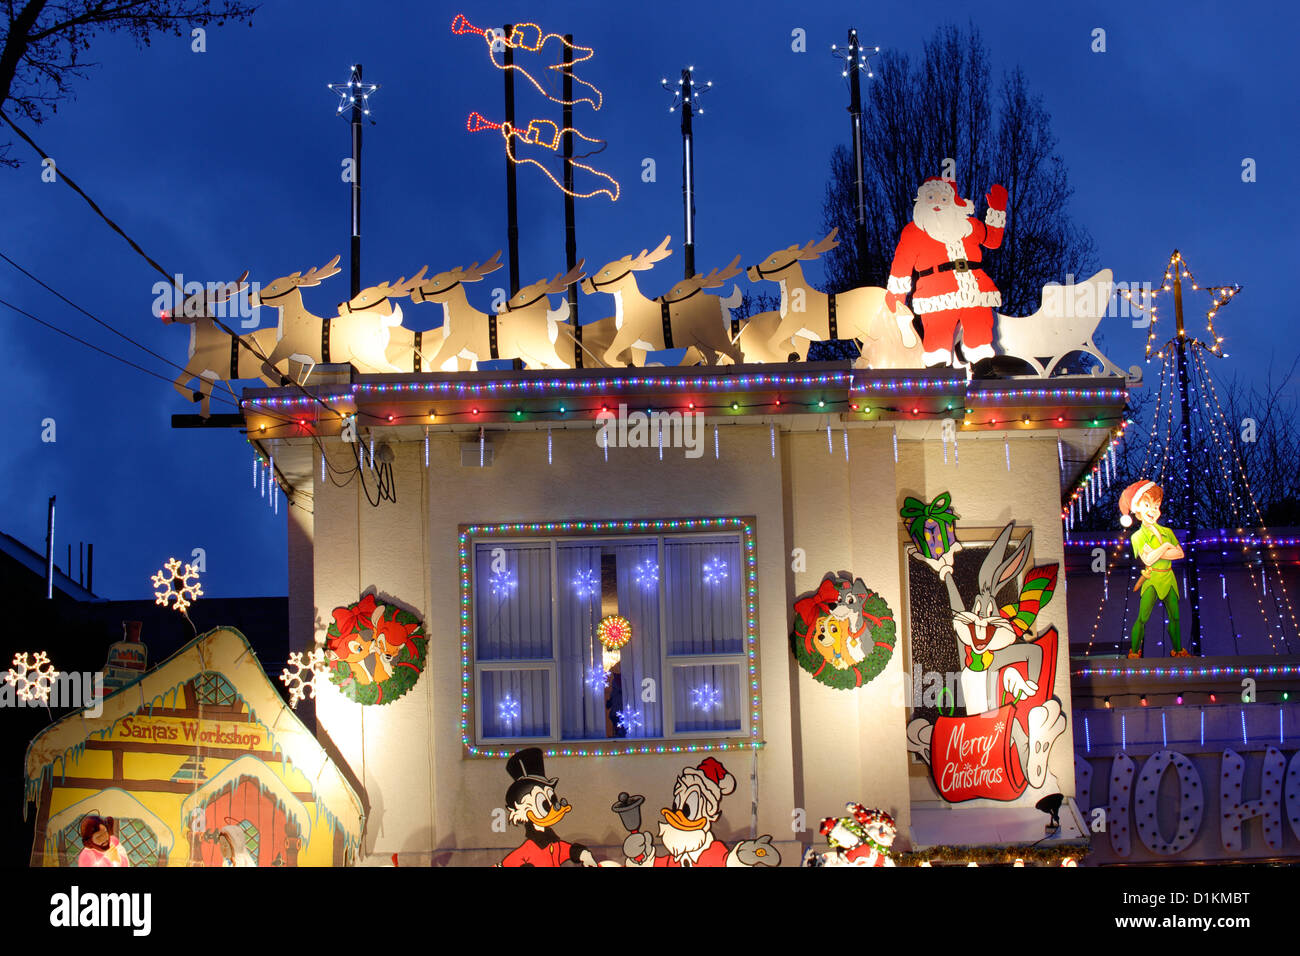 santa and his reindeer on top of house lit up for annual christmas